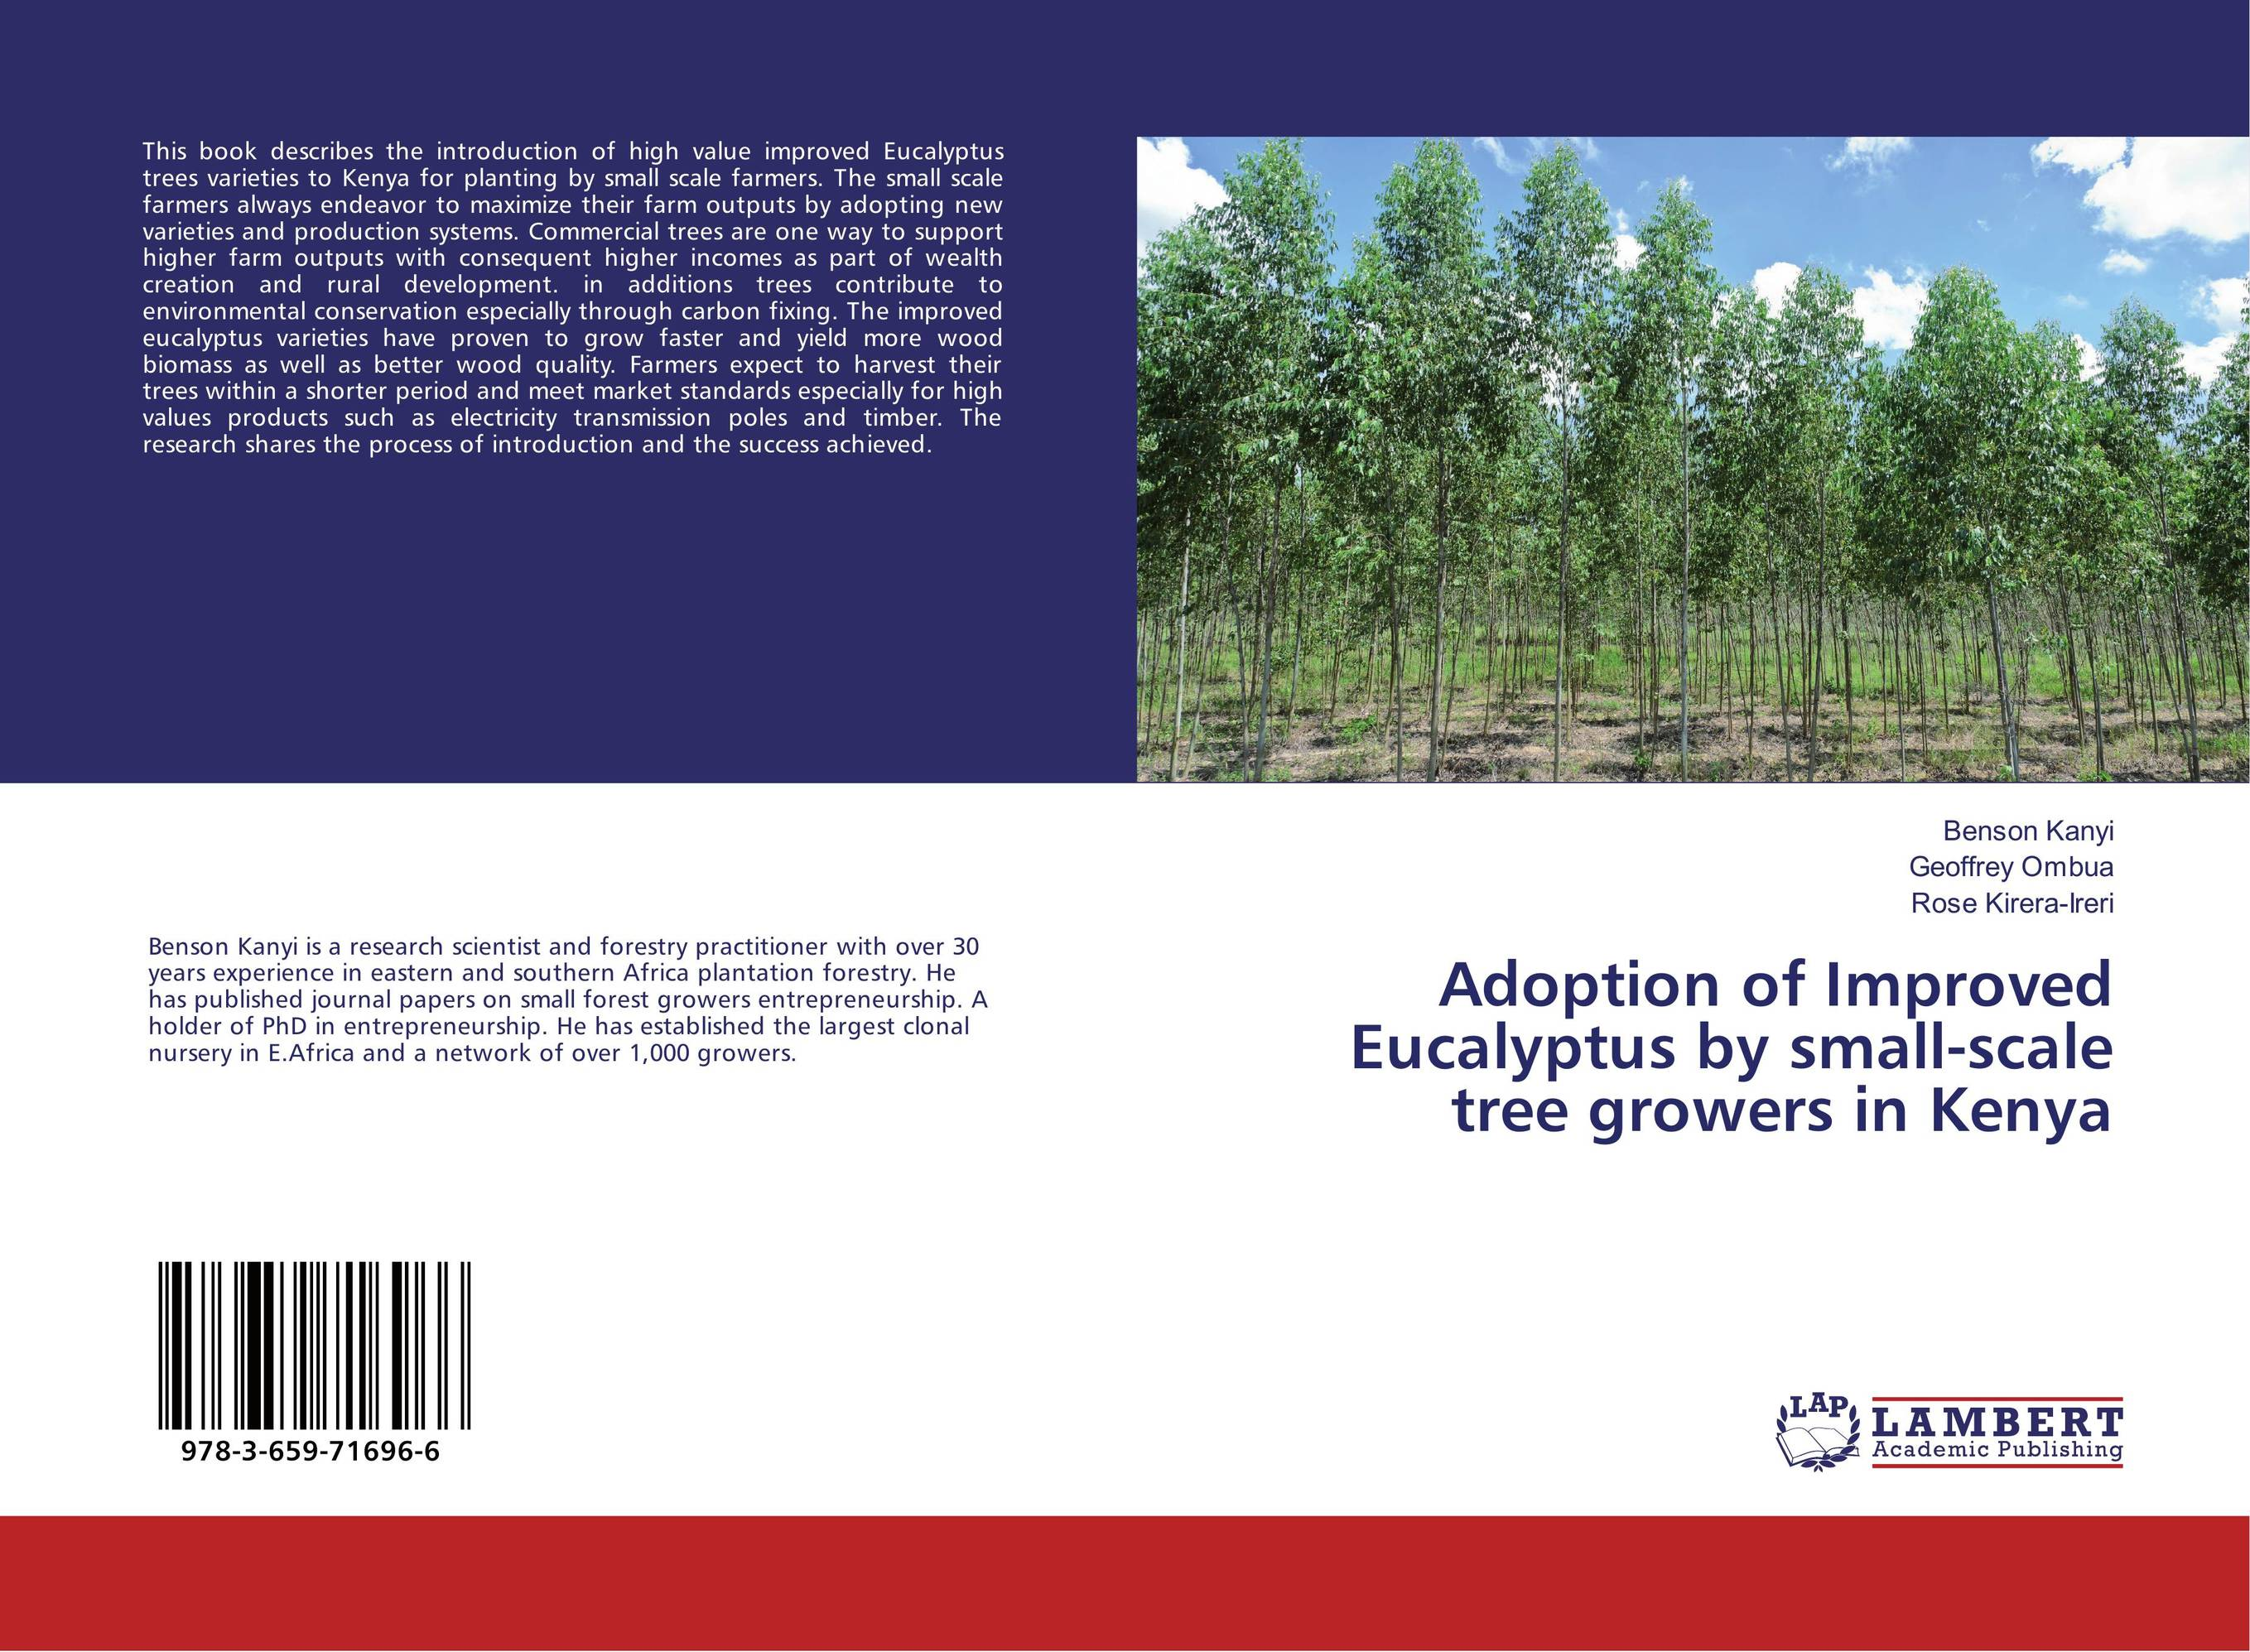 Adoption of Improved Eucalyptus by small-scale tree growers in Kenya among the lemon trees